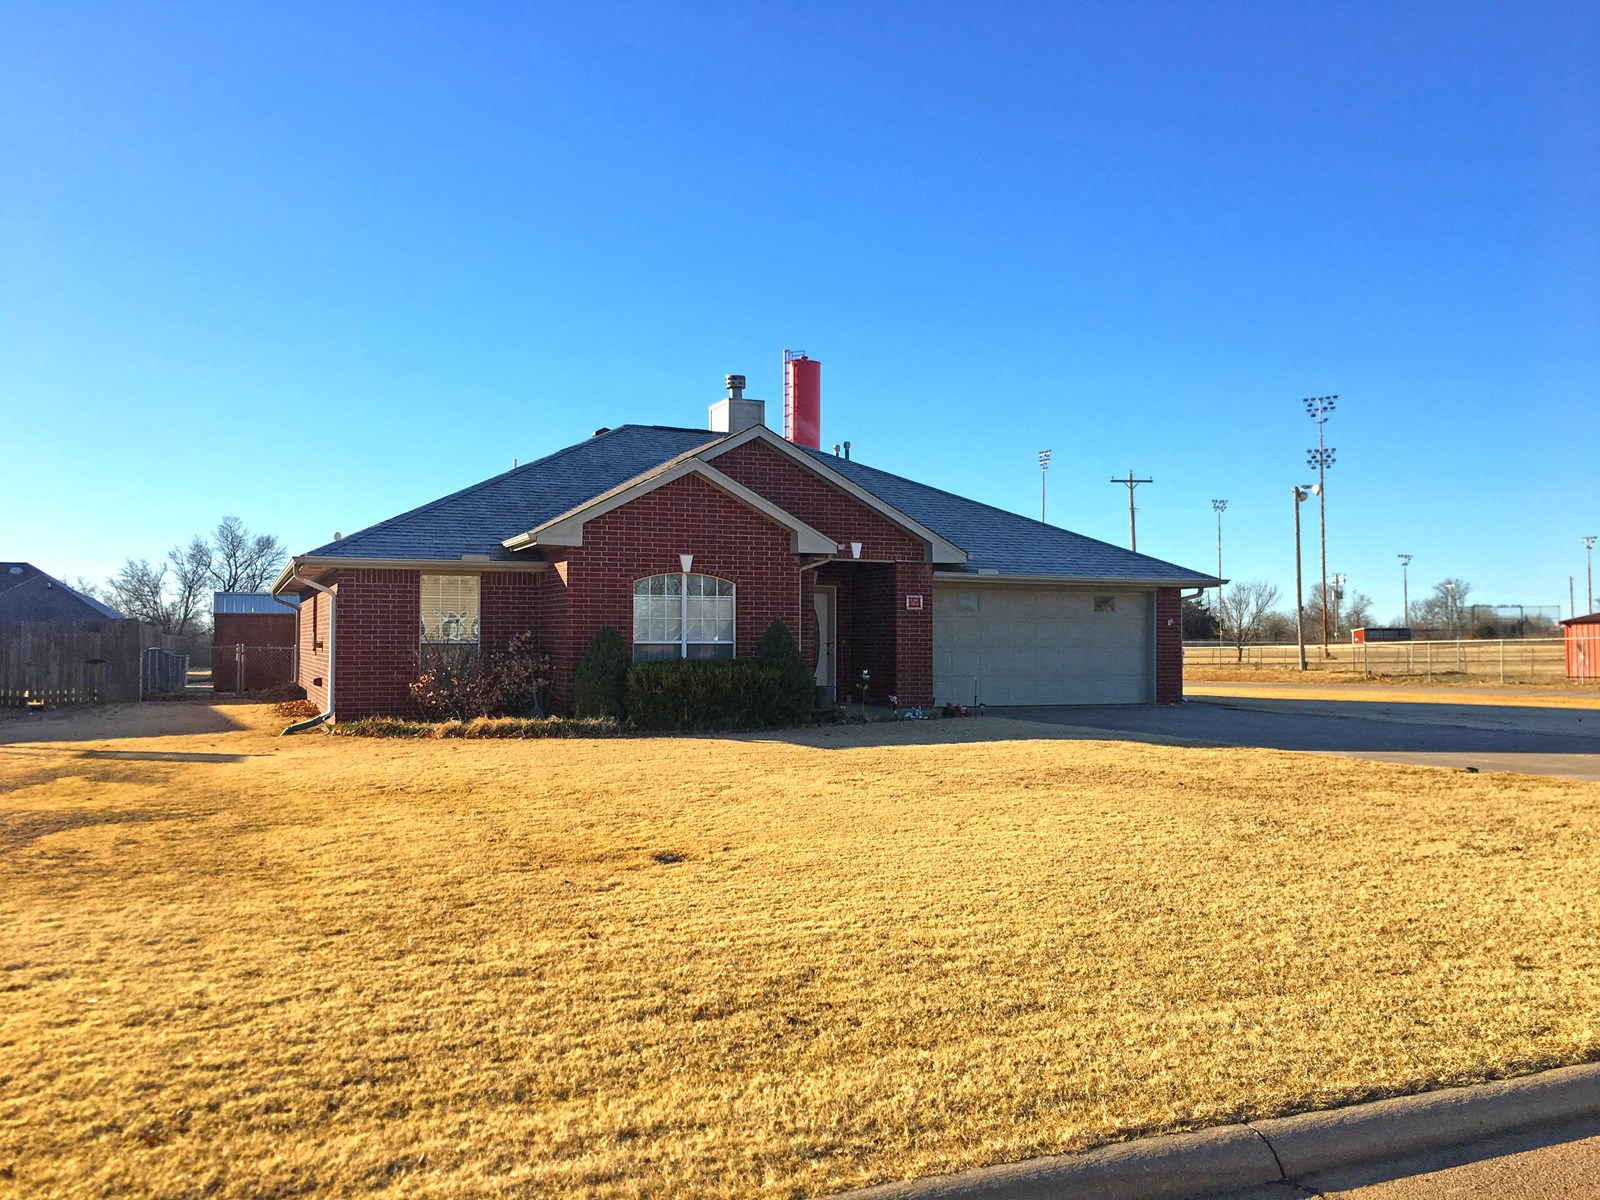 Home for Sale in Morrison, Oklahoma | Noble County